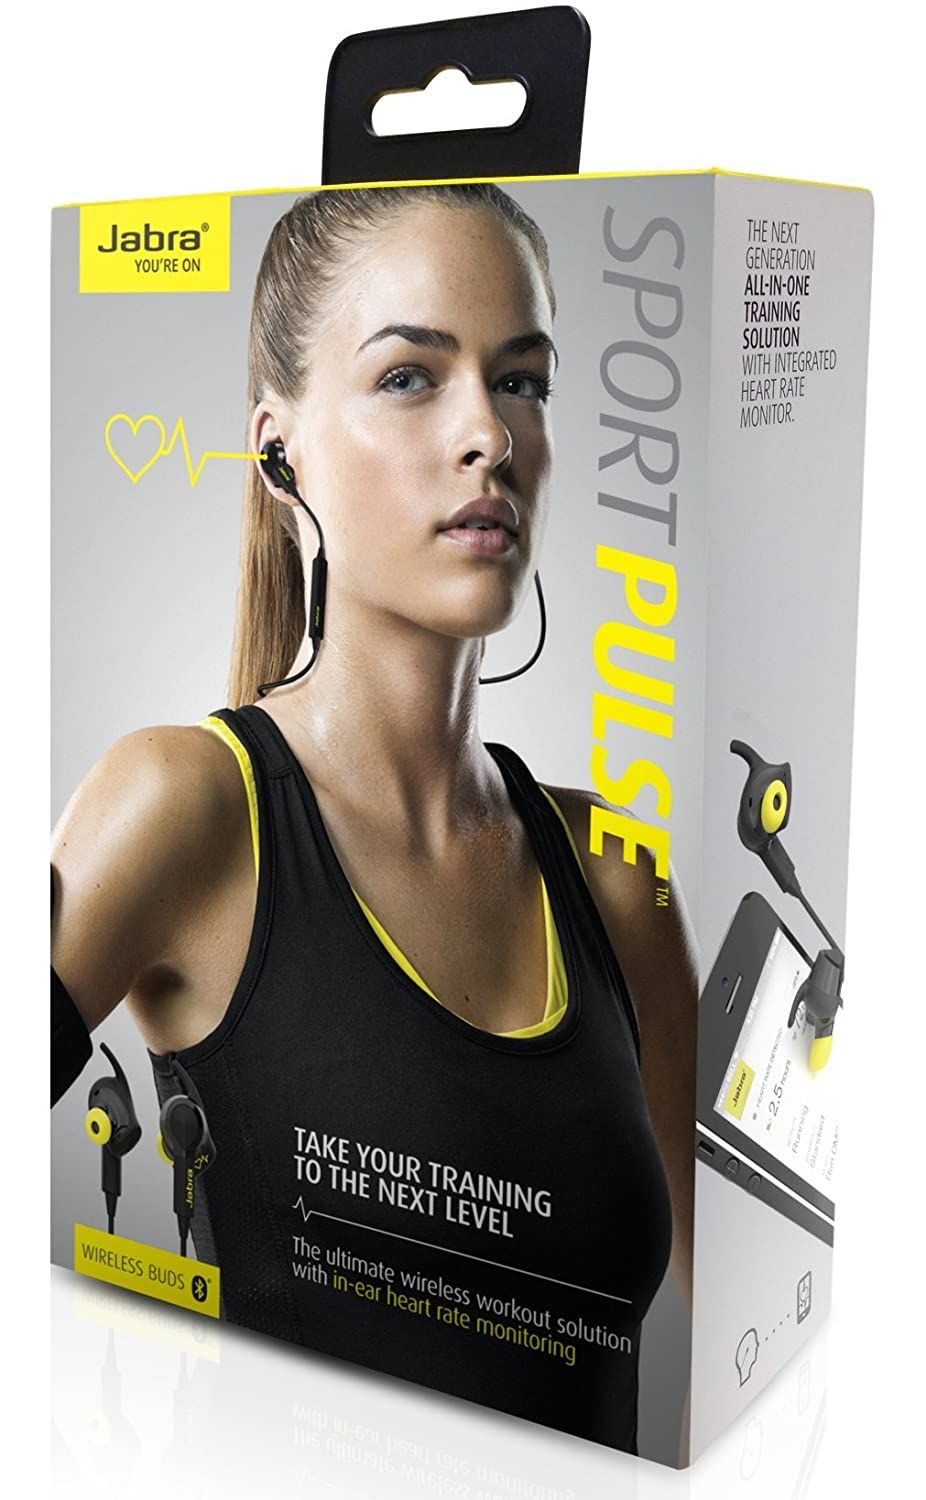 6709f6cbd8475 Jabra SPORT PULSE Wireless Bluetooth Stereo Earbuds with Built-In Heart  Rate Monitor (US Version)  Amazon.ca  Cell Phones   Accessories